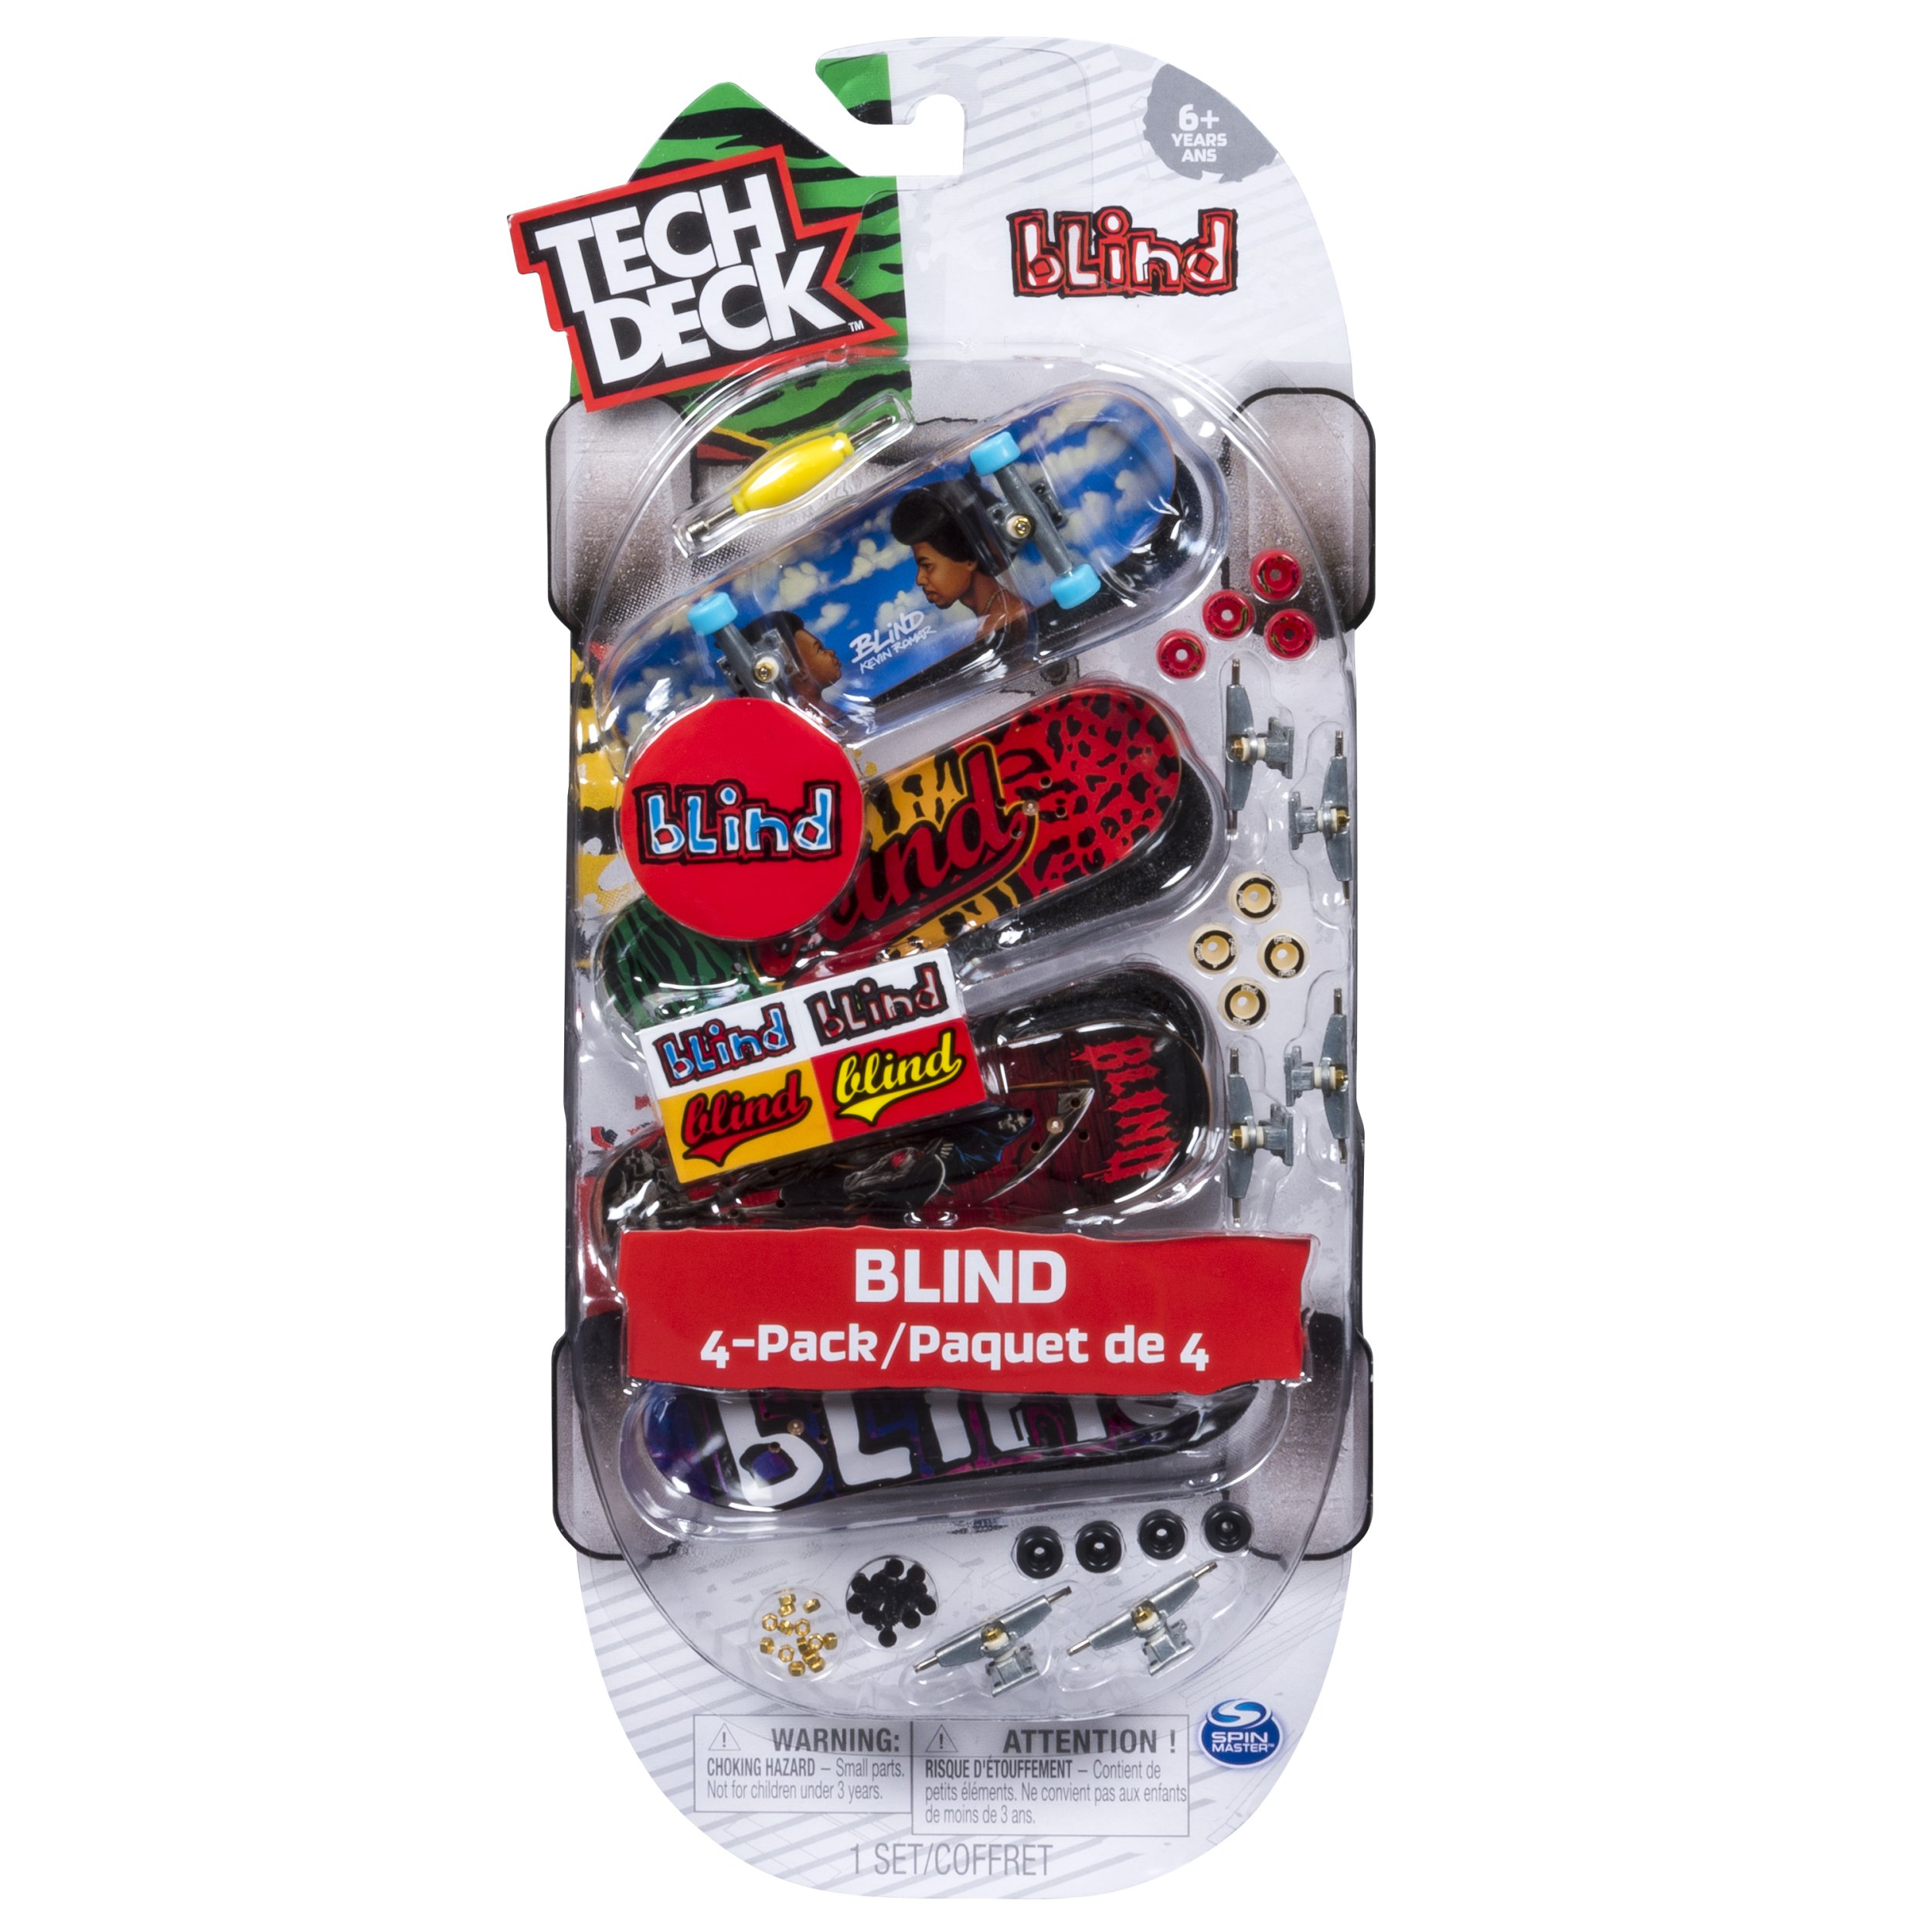 TECH DECK - 96mm Fingerboards - 4-Pack - Blind by TECH DECK